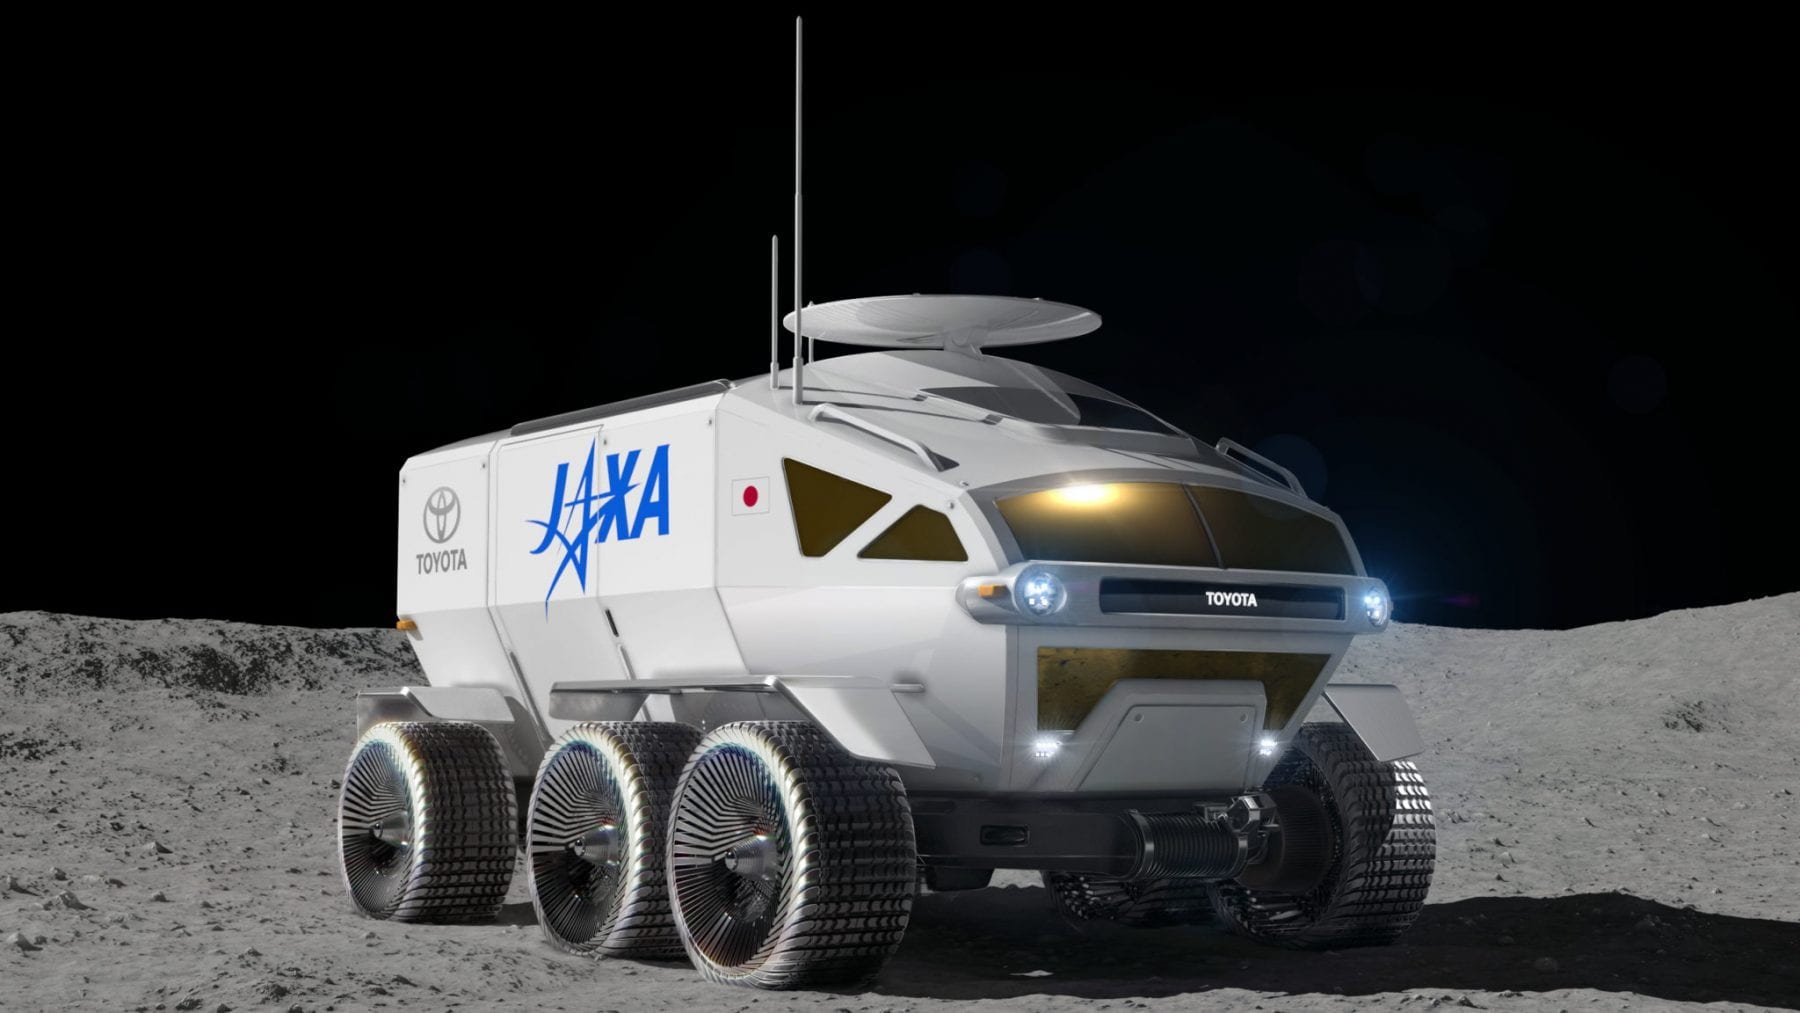 """An older artist's impression of JAXA's vehicle to be sent to the Moon in 2029. It was announced last year in collaboration with Toyota Motor Corp. and dubbed the """"Lunar Cruiser"""". The goal of the unique pressiorized rover is to establish permanent crewed presence on the Moon. Credit: JAXA"""